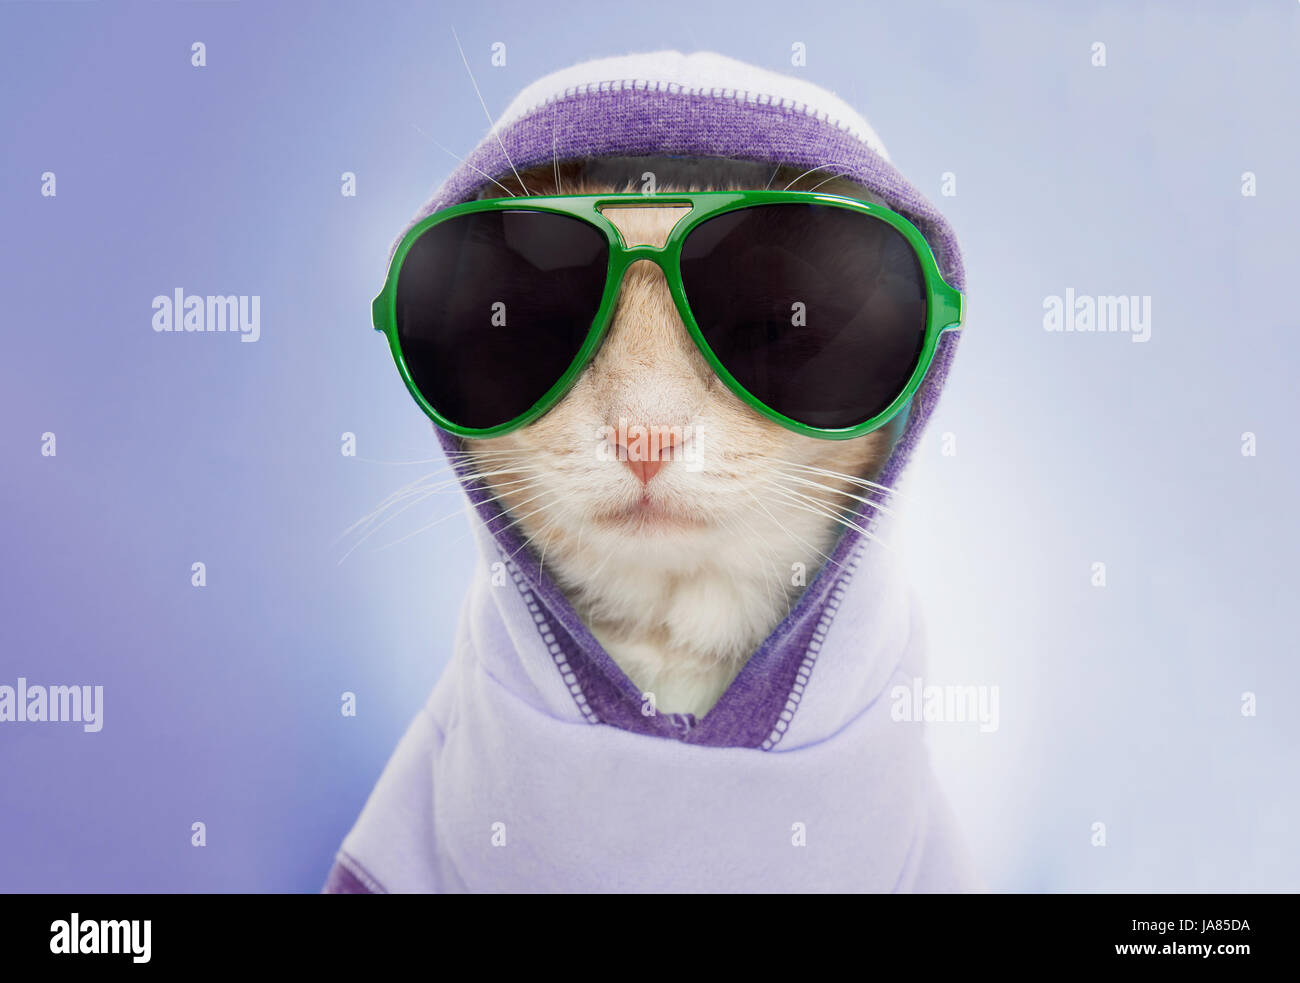 Studio portrait of cat wearing a hood and aviator sunglasses looking directly at camera. Stock Photo